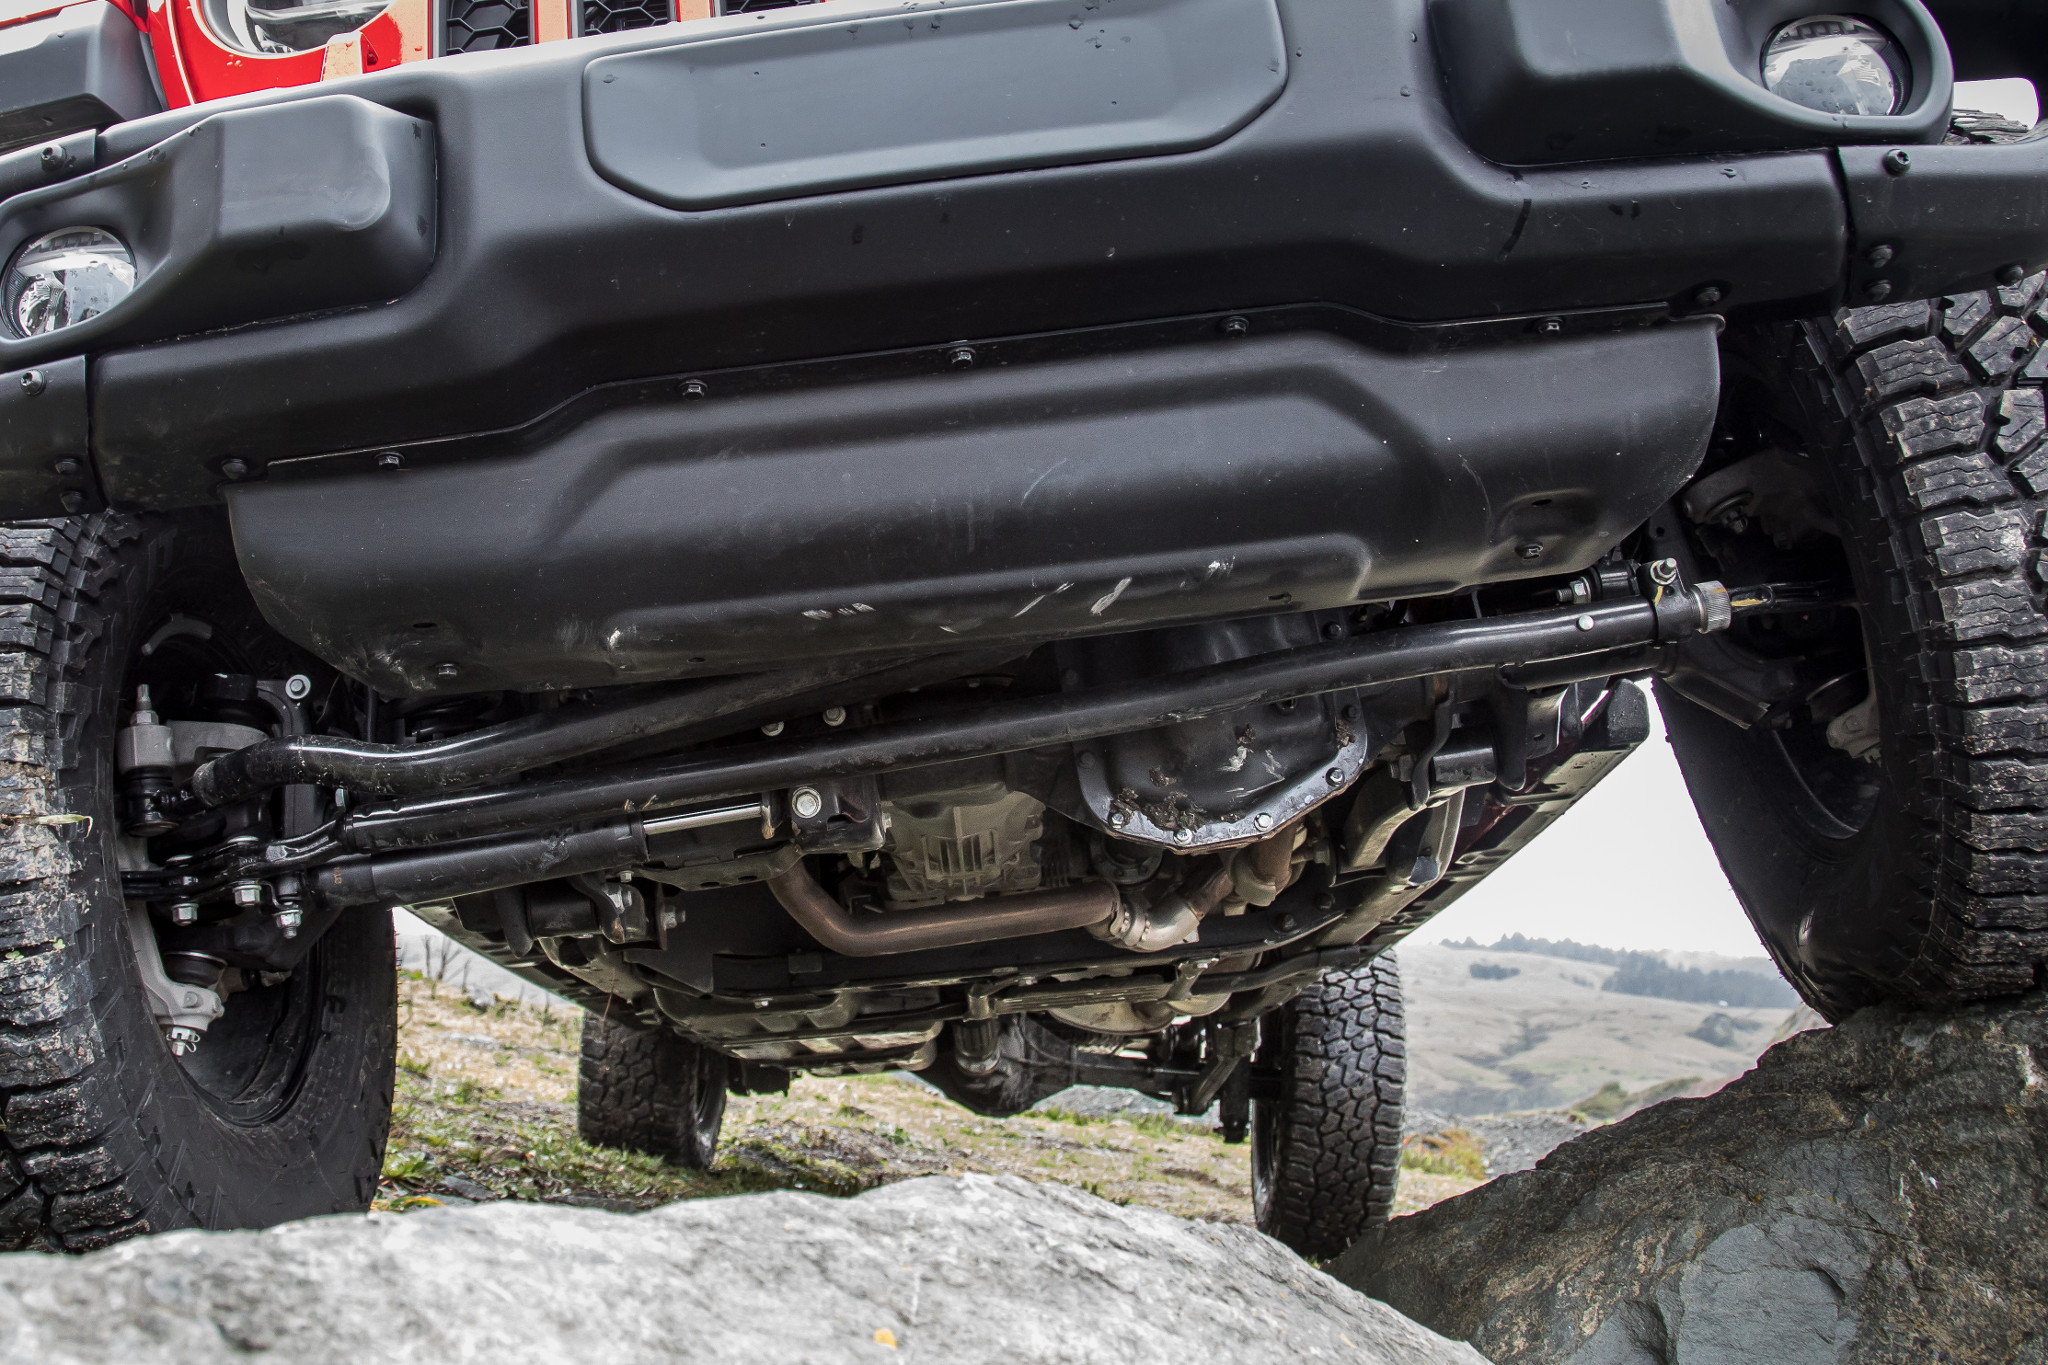 2020 Jeep Gladiator Rubicon's undercarriage